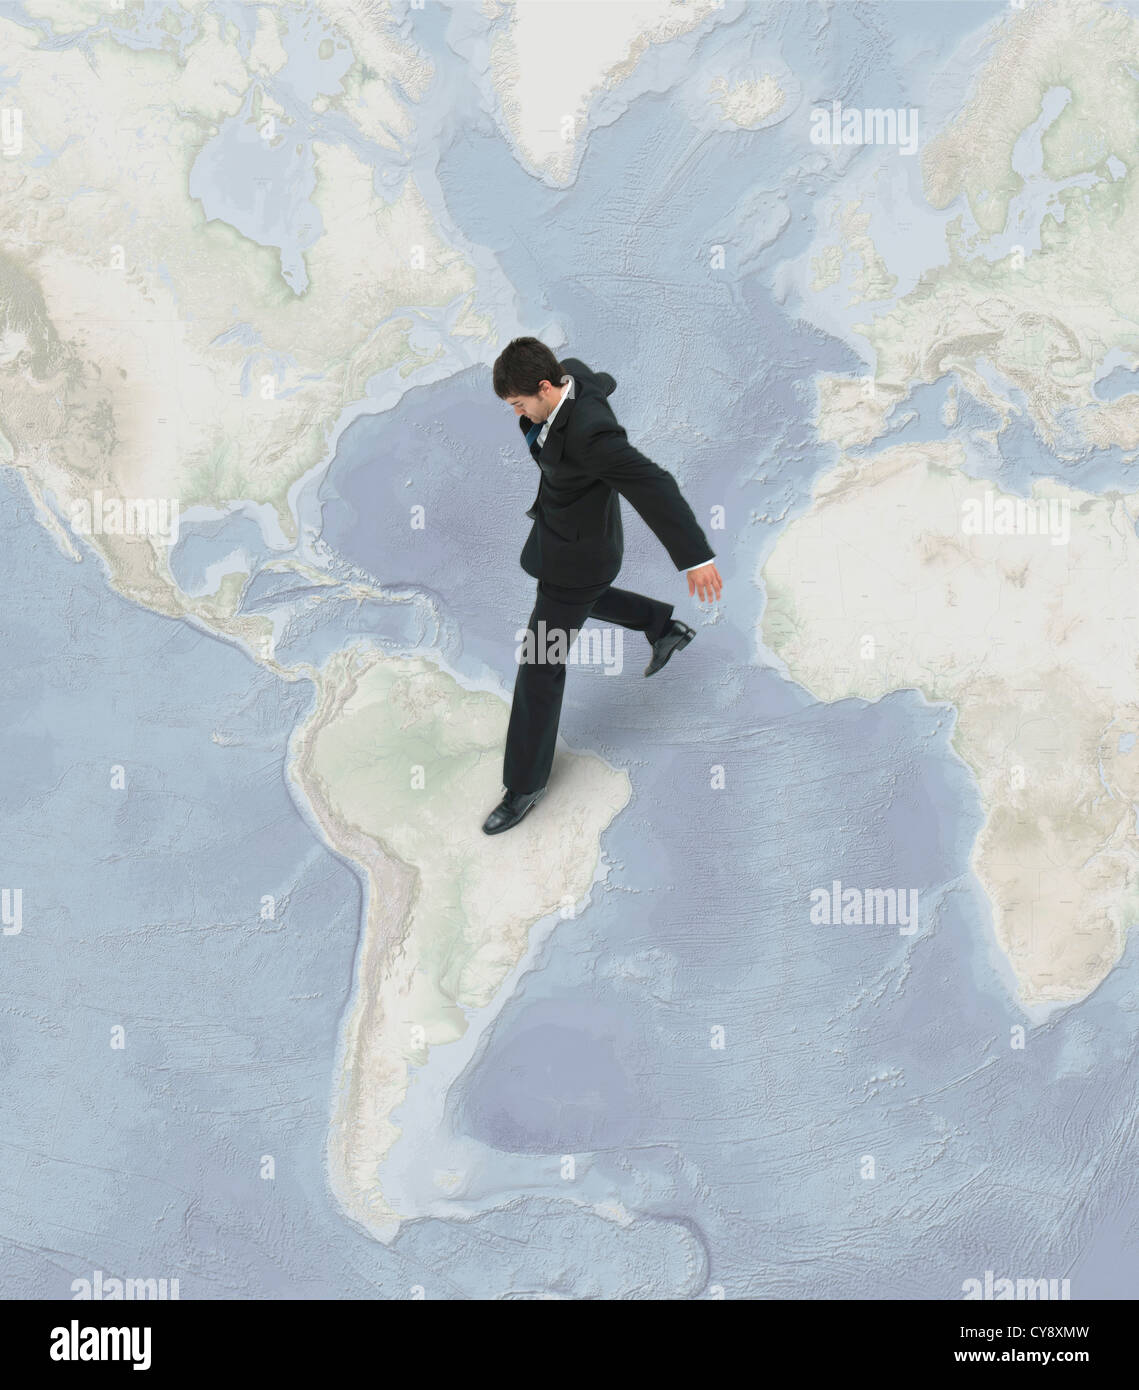 International business professionals take risks investing in emerging economies - Stock Image